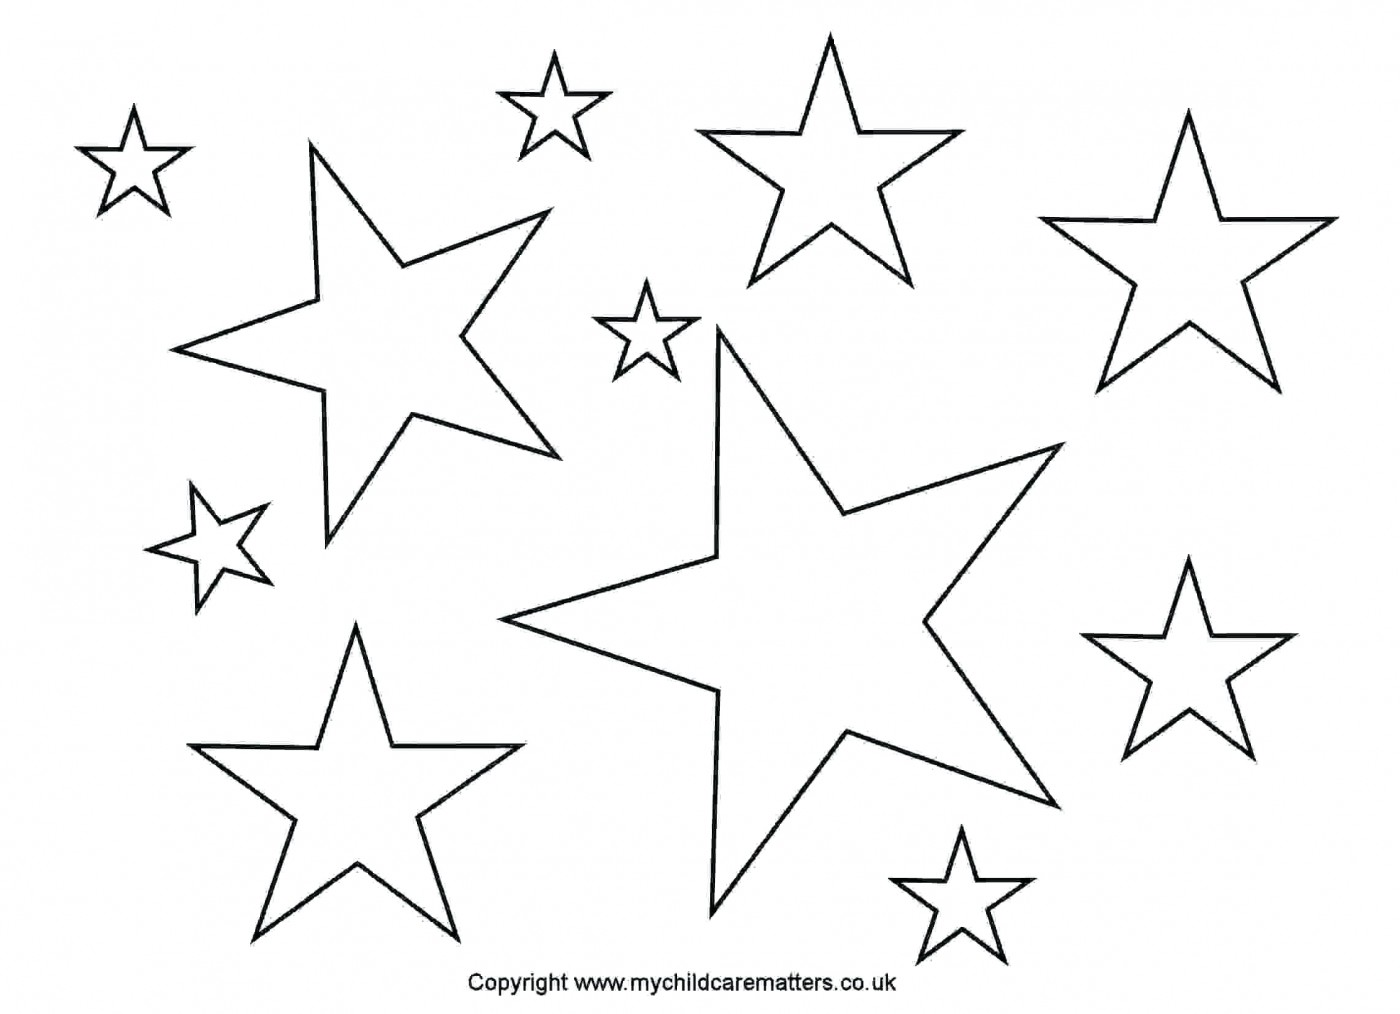 005 Stars Outlines Printables Star Outline Images Greeting Cards 1400x1014